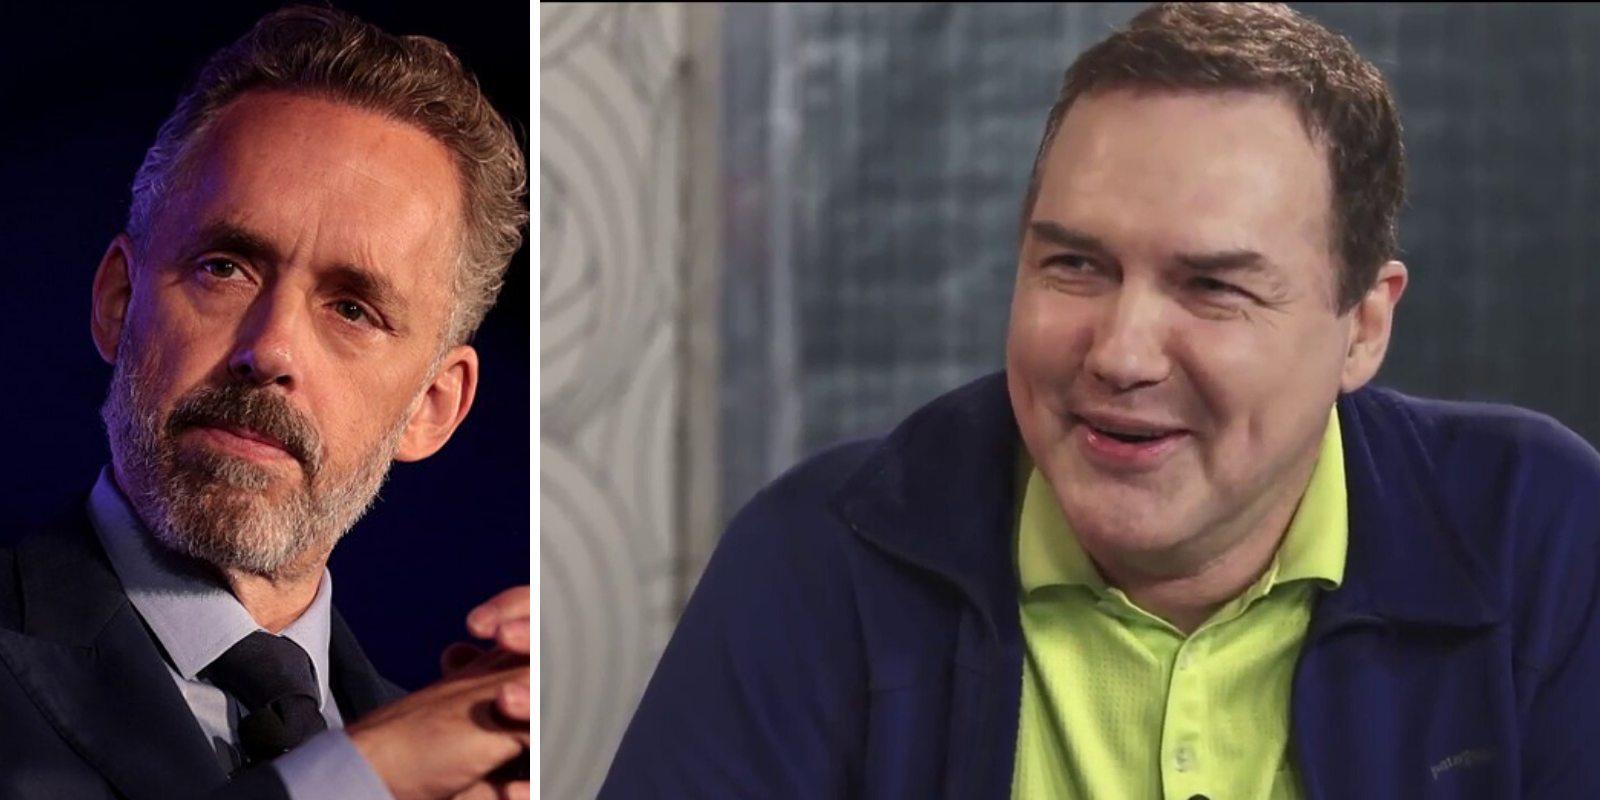 Norm Macdonald asks Dr. Jordan Peterson to appear on his podcast